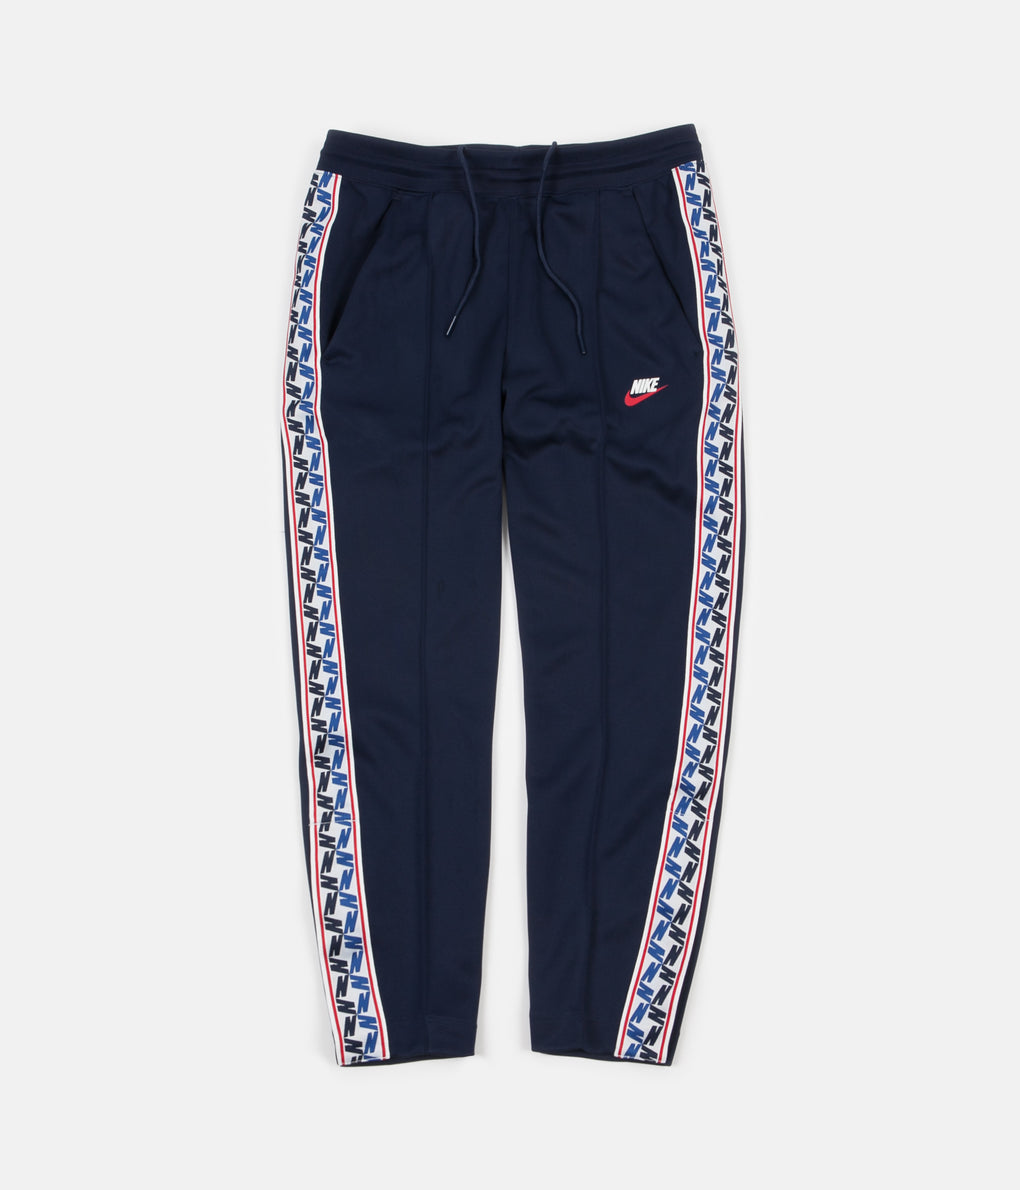 Nike Taped Poly Pants - Obsidian / Sail